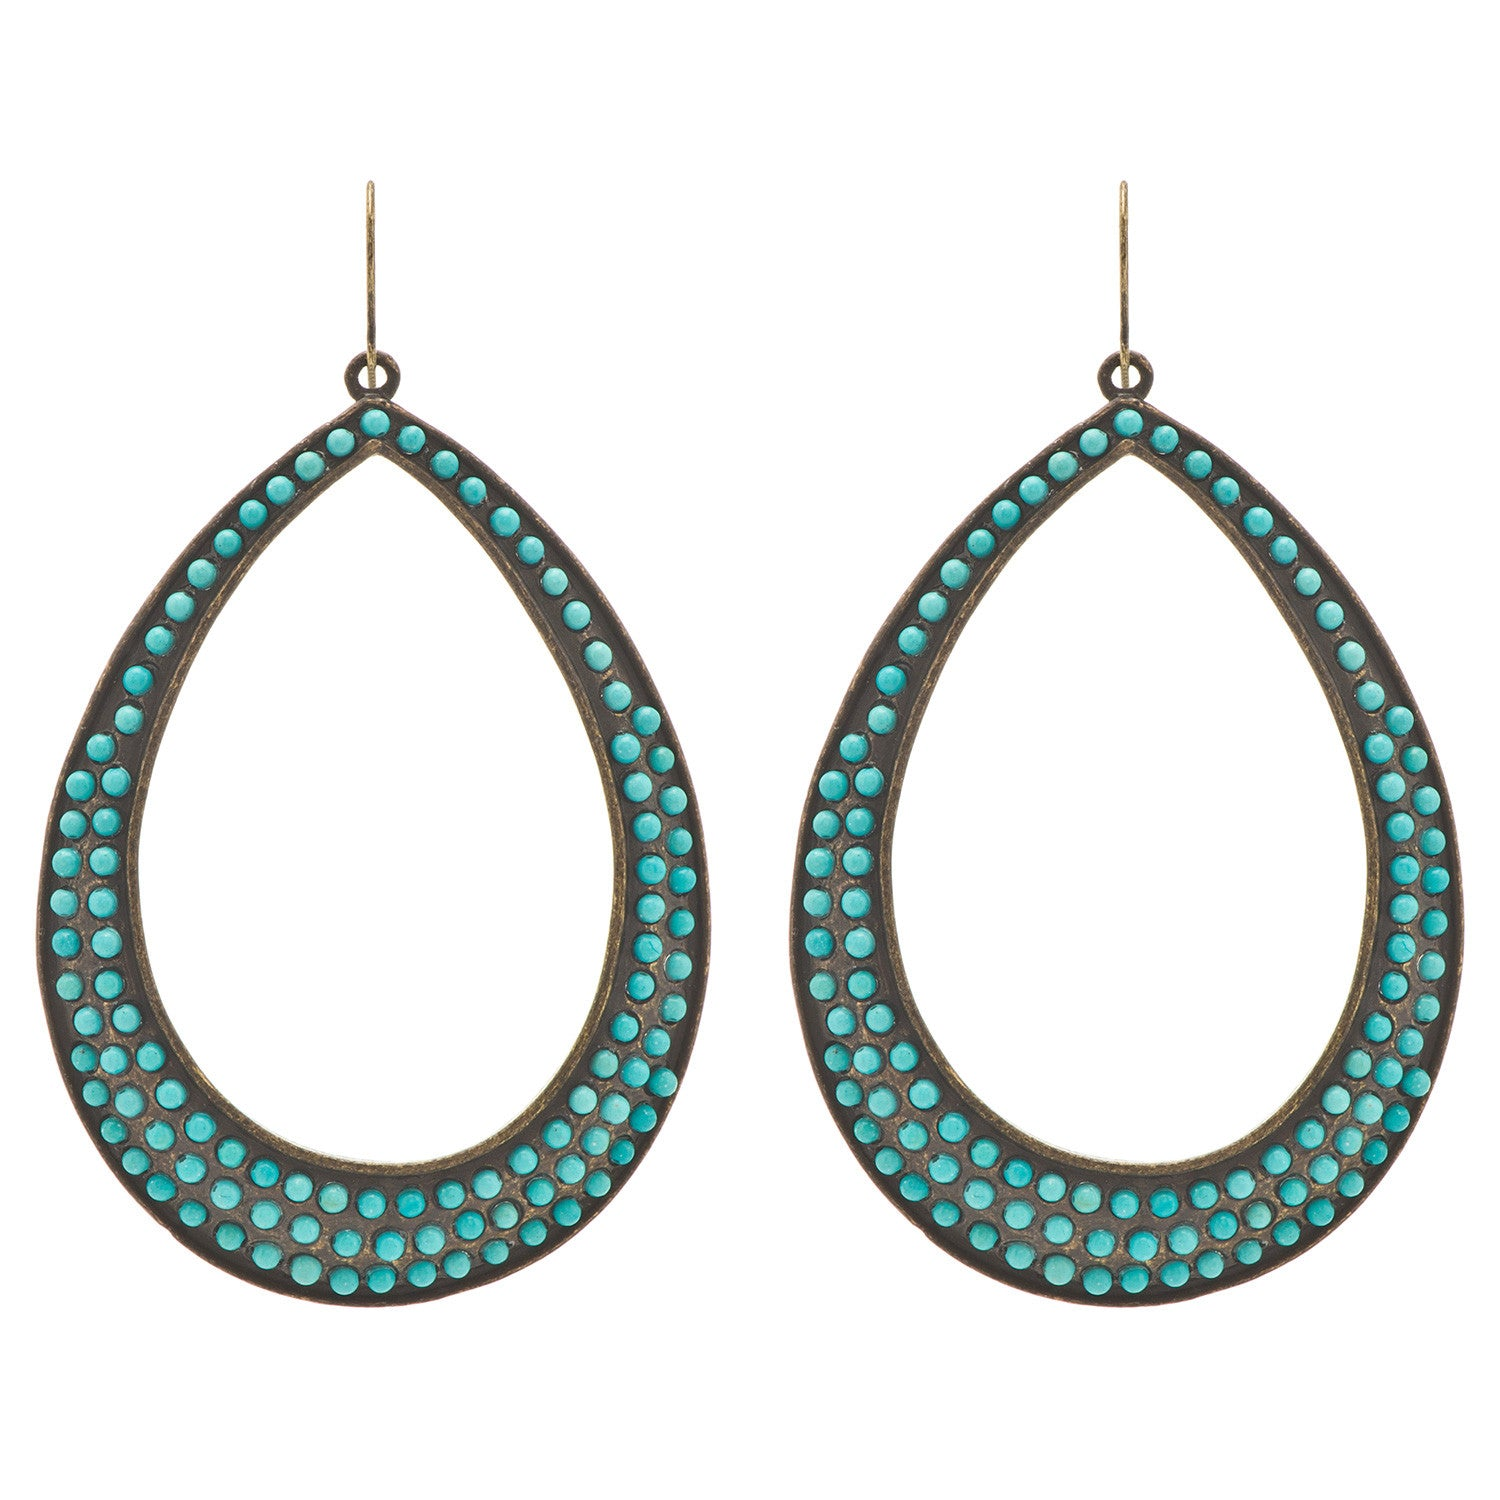 Turquoise Large Open Teardrop Earrings